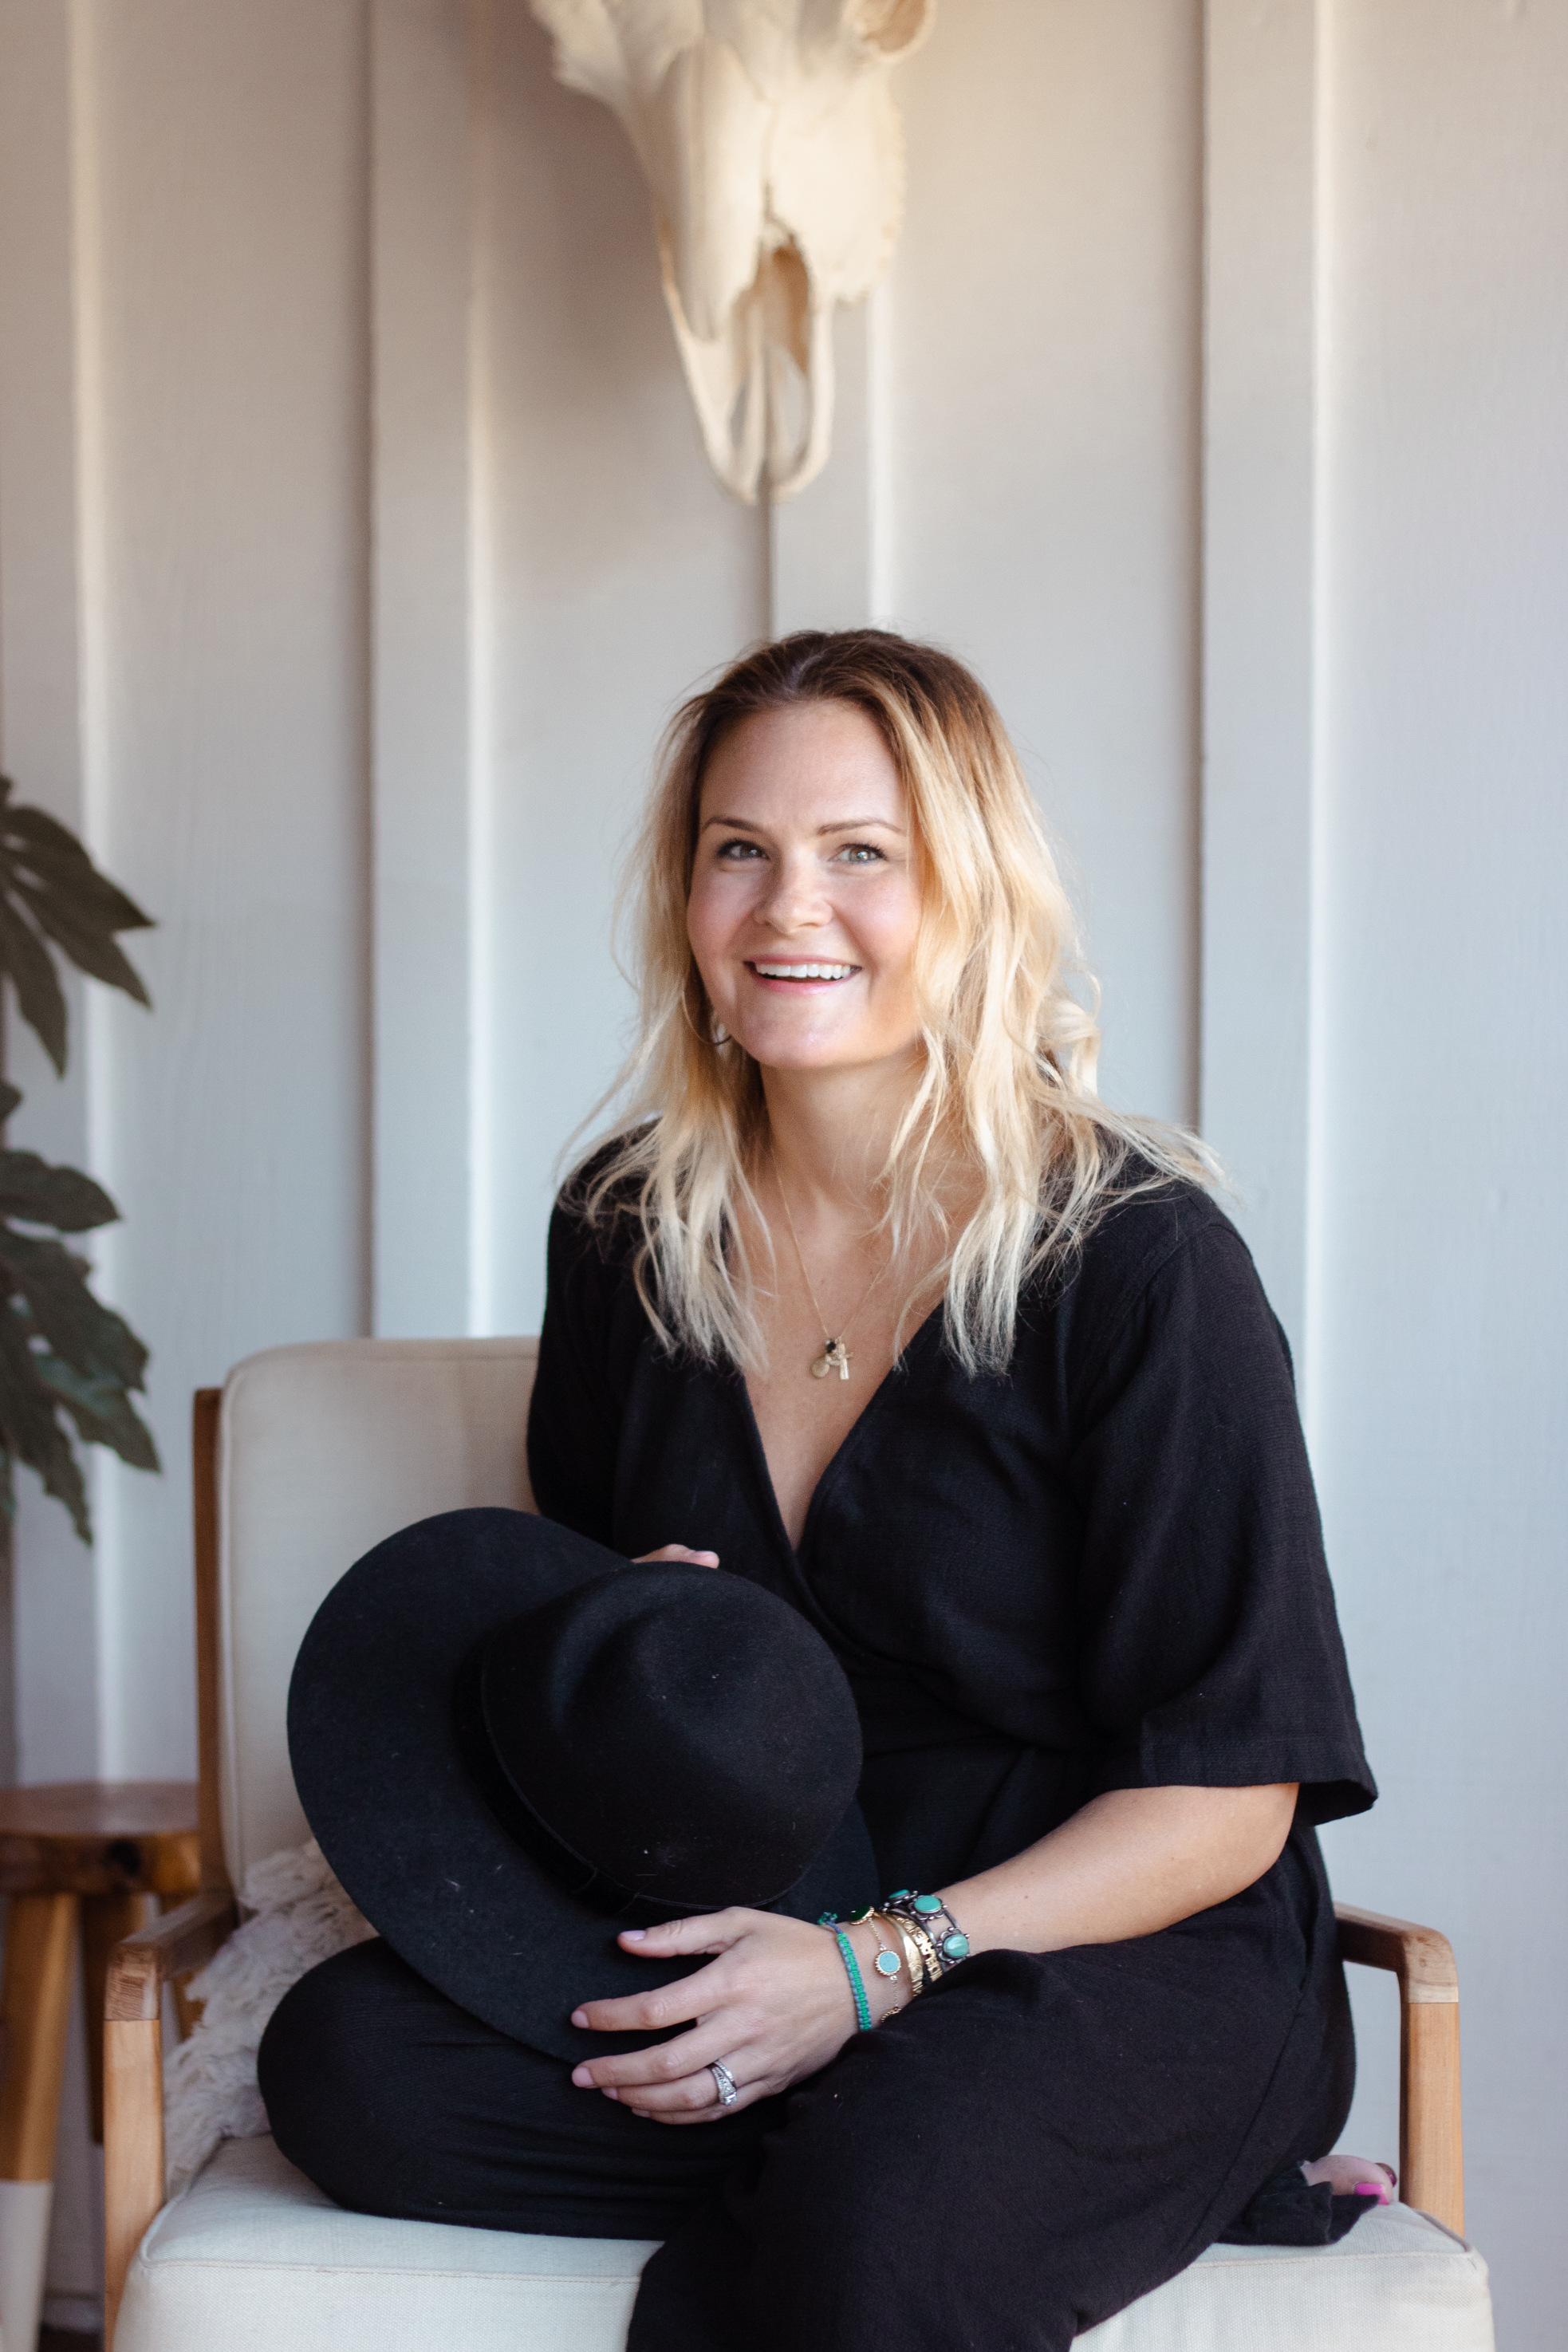 Meghan Phillips, founder of Honey + co-founder of Simple Summers - These images were shot in Meghan's 1952 Spanish adobe home as updated headshots and to be used for Creativity + Sacramento.